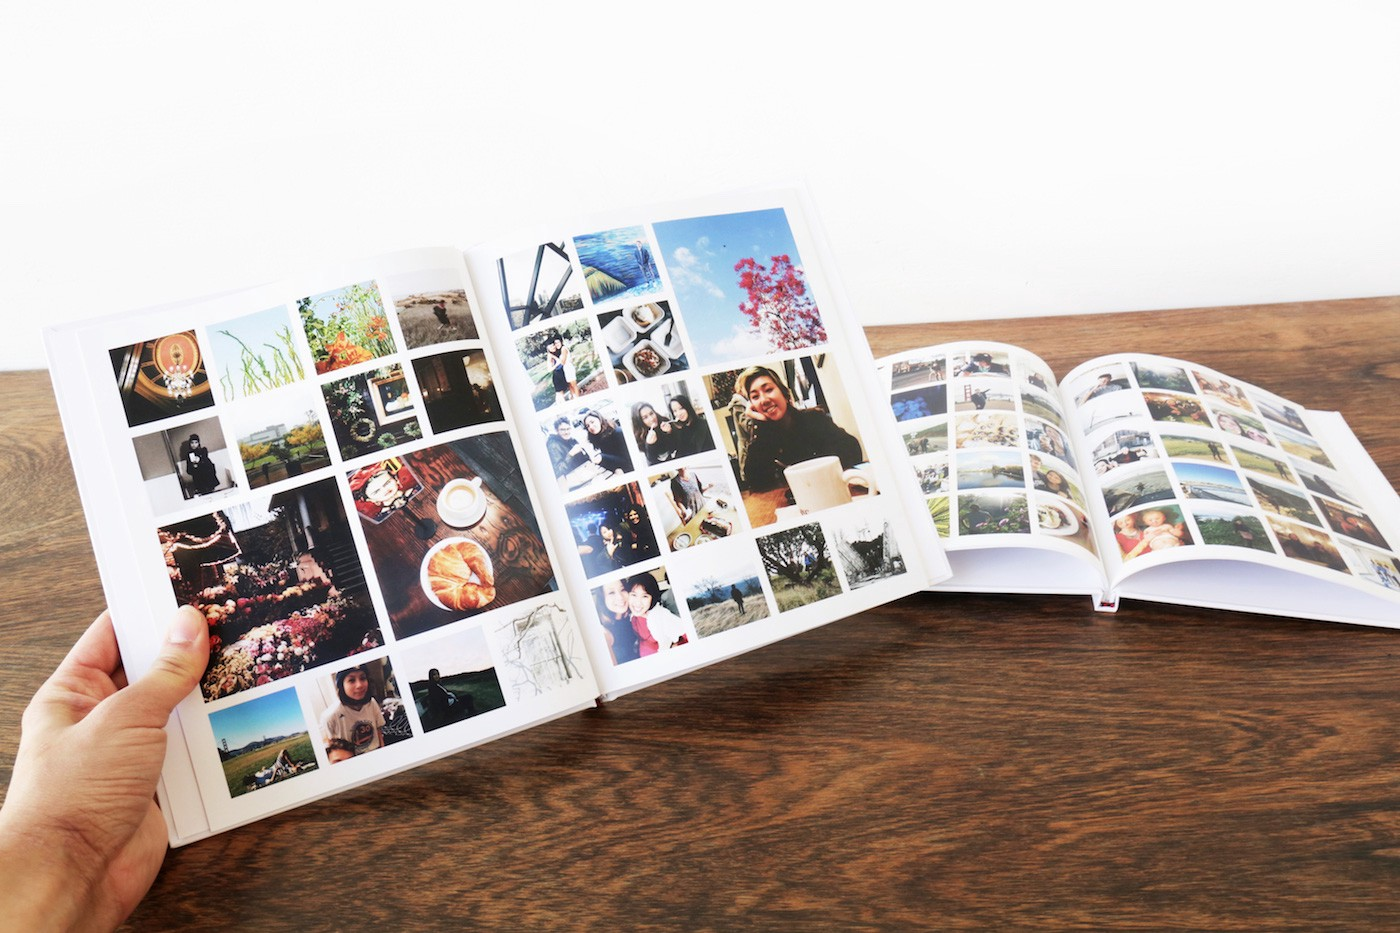 A Photo Album Can Be Very Creative Idea As Gift For Your Friends Birthday Filled With All The Photos Of You And Friend Over